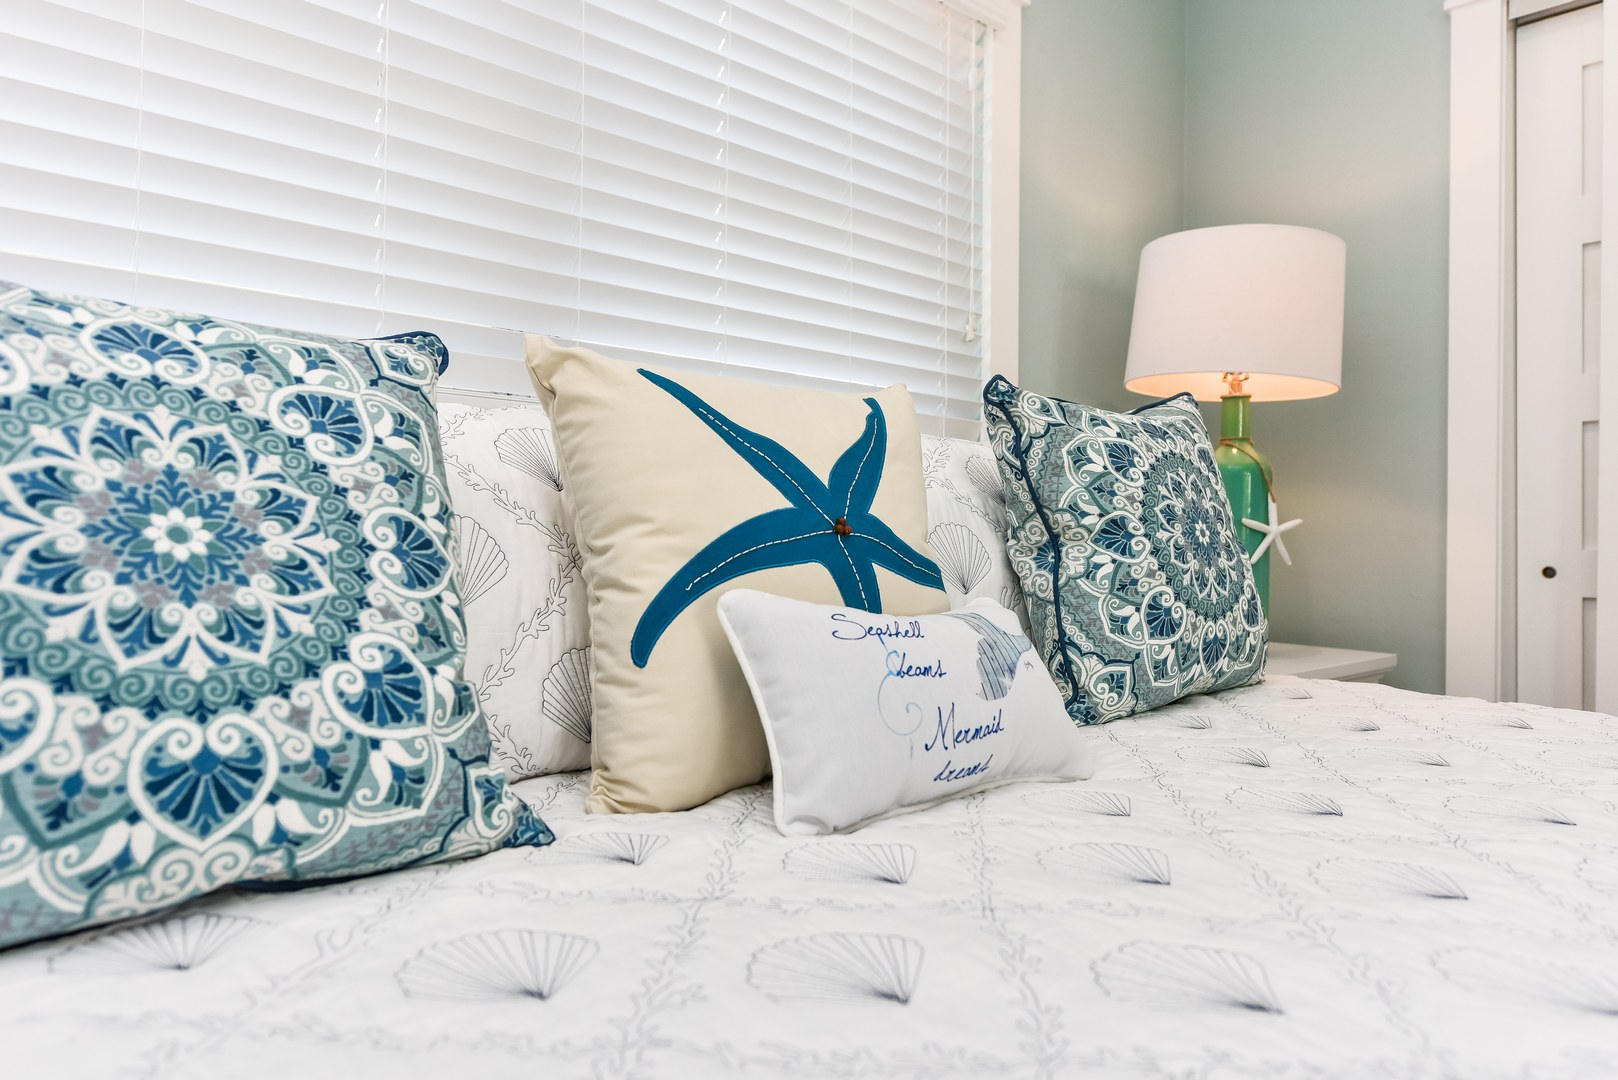 Pillows and Decorations make this a home away from home